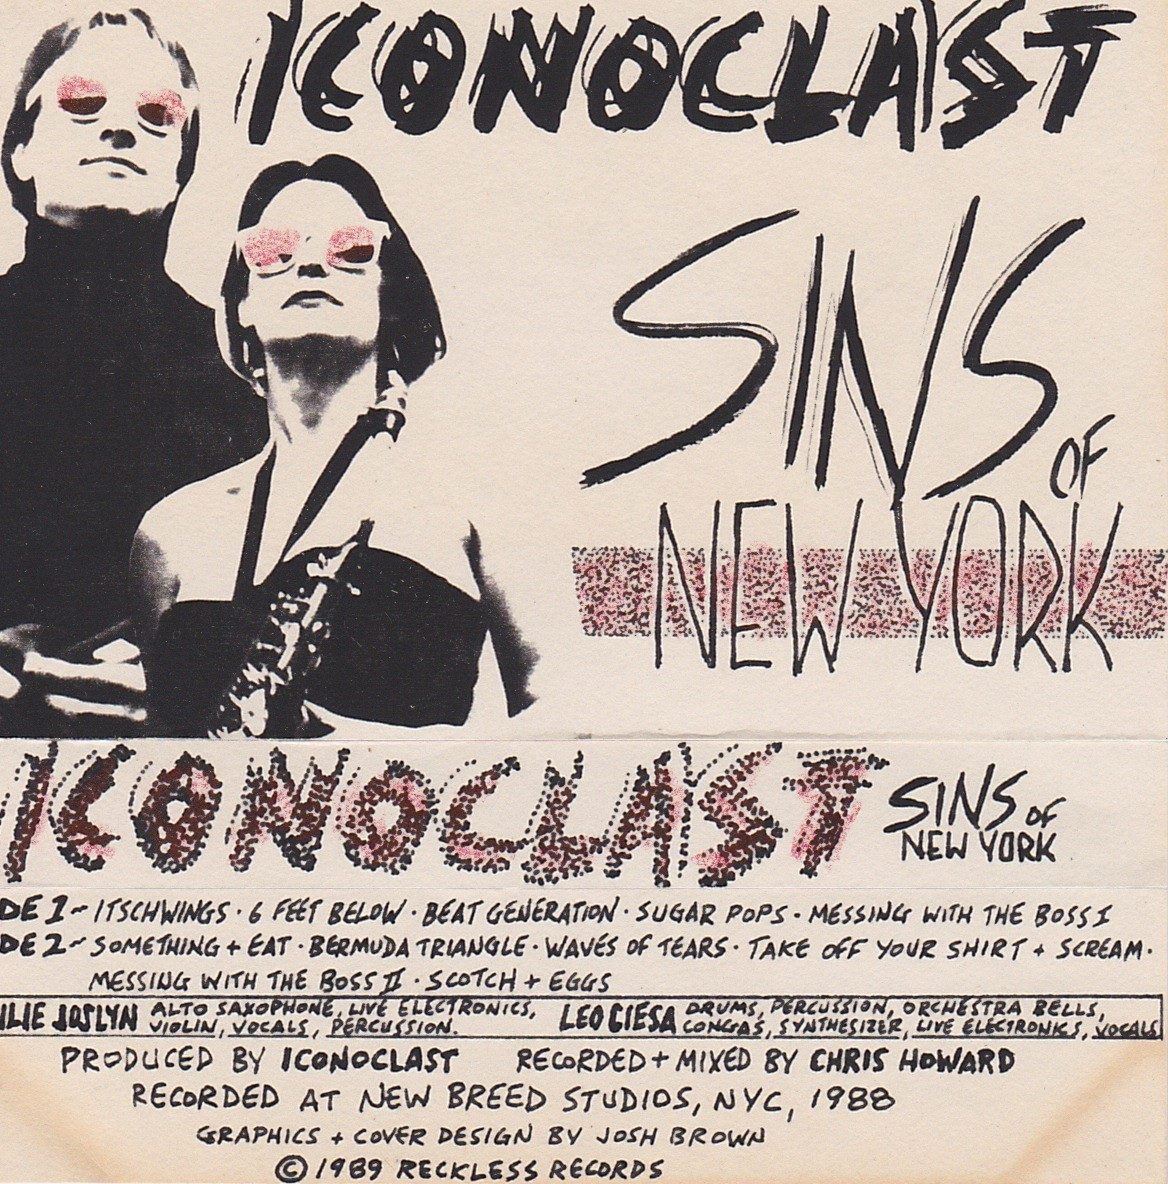 Iconoclast: Sins of New York, 1989